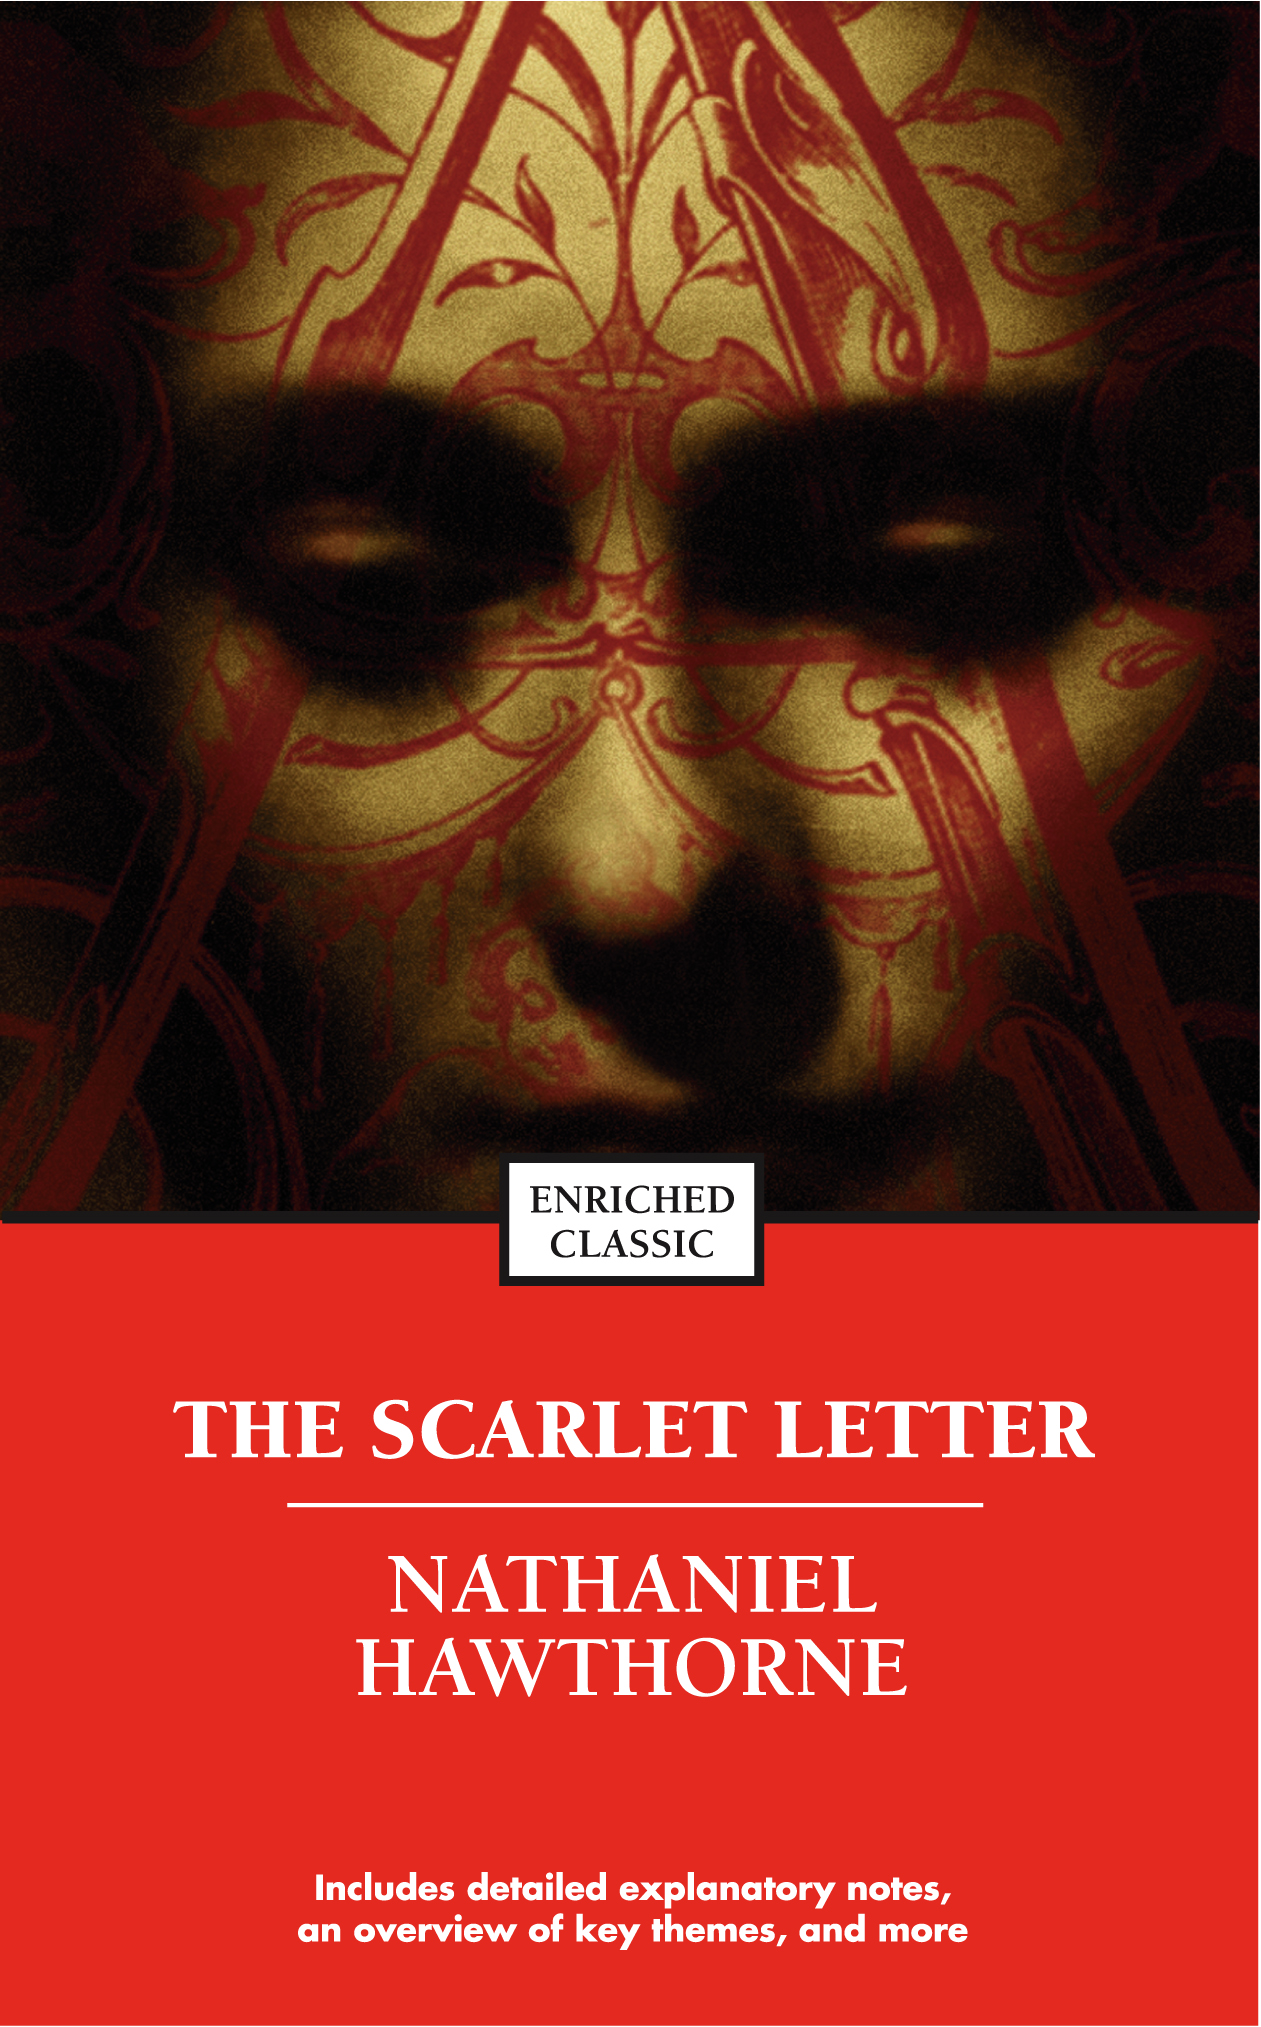 Sin in the Characters of The Scarlet Letter by Nathaniel Hawthorne